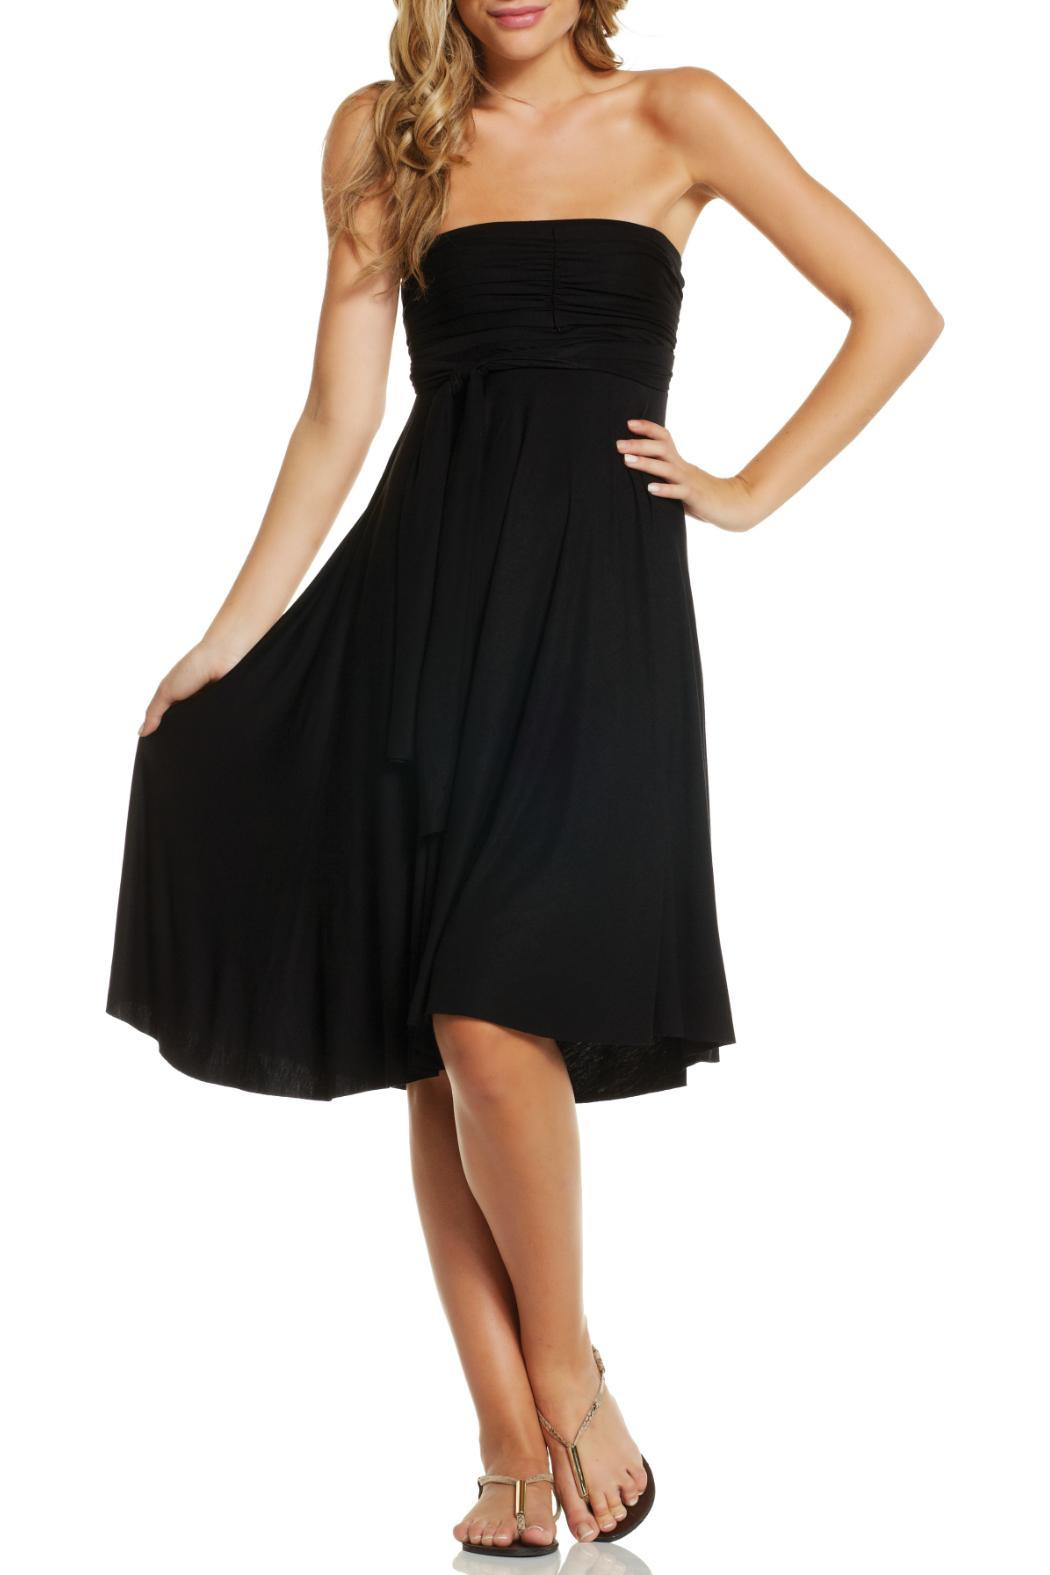 Beth Friedman Convertible Dress & Skirt - Back Cropped Image